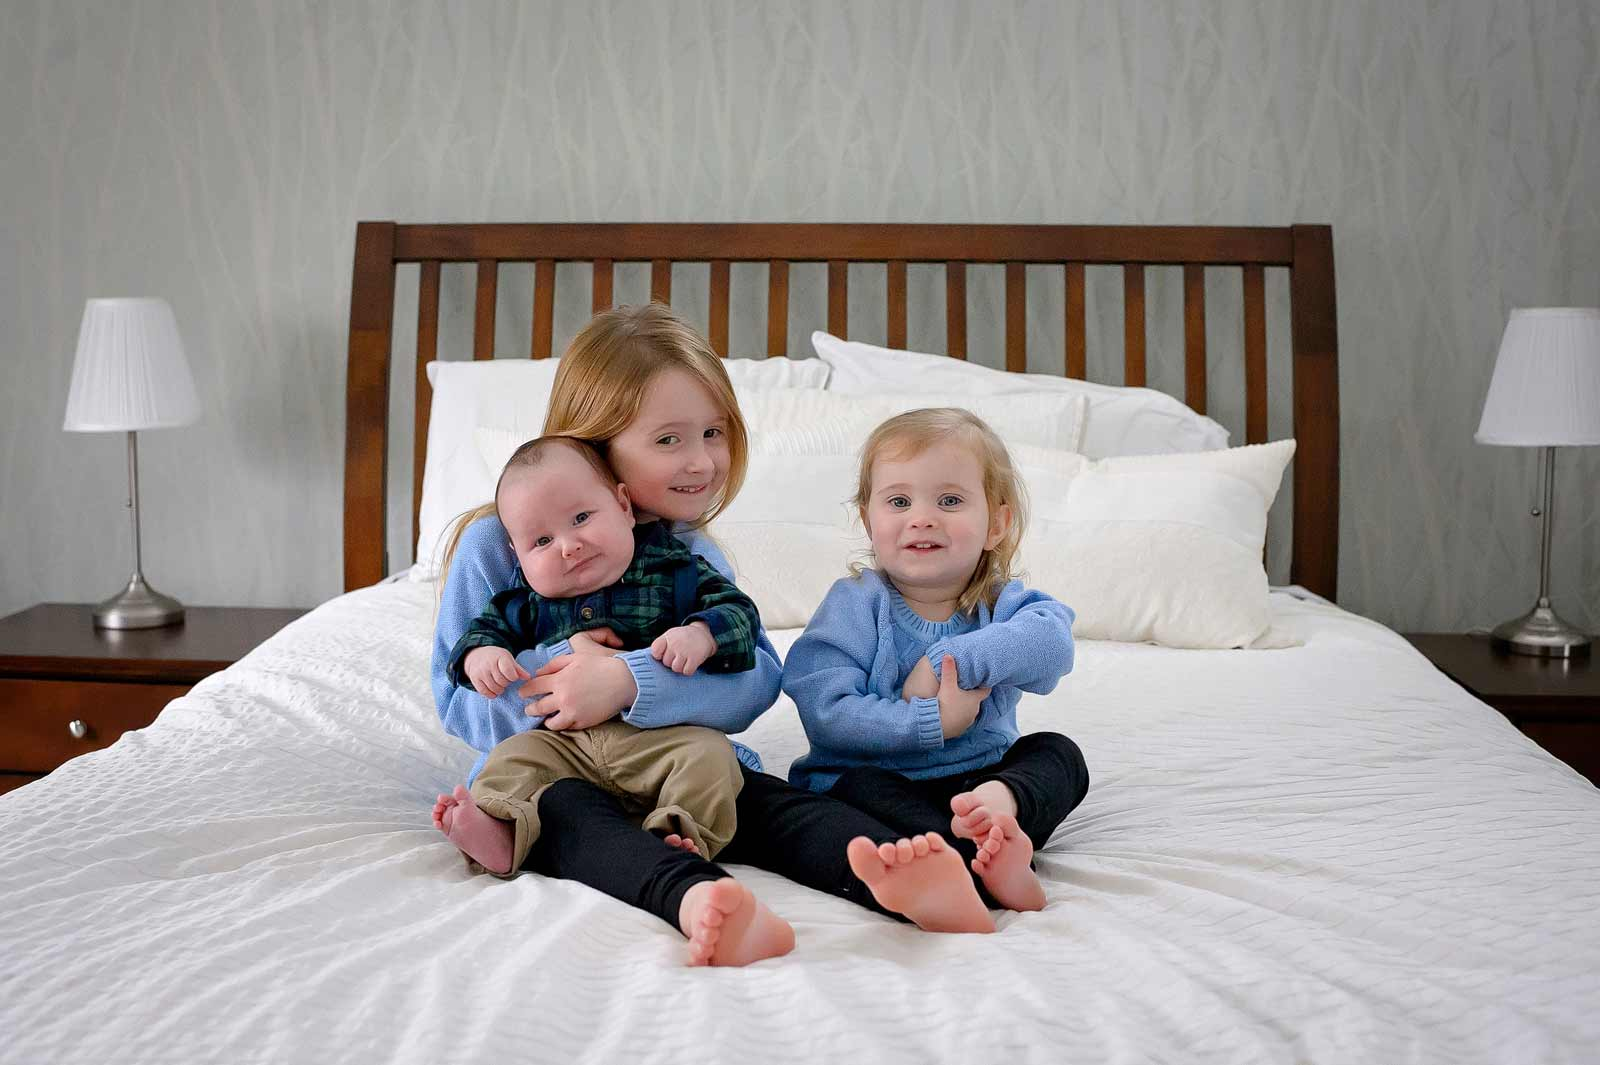 Baby Connor being hugged and cuddled with his siblings in Ottawa, Ontario